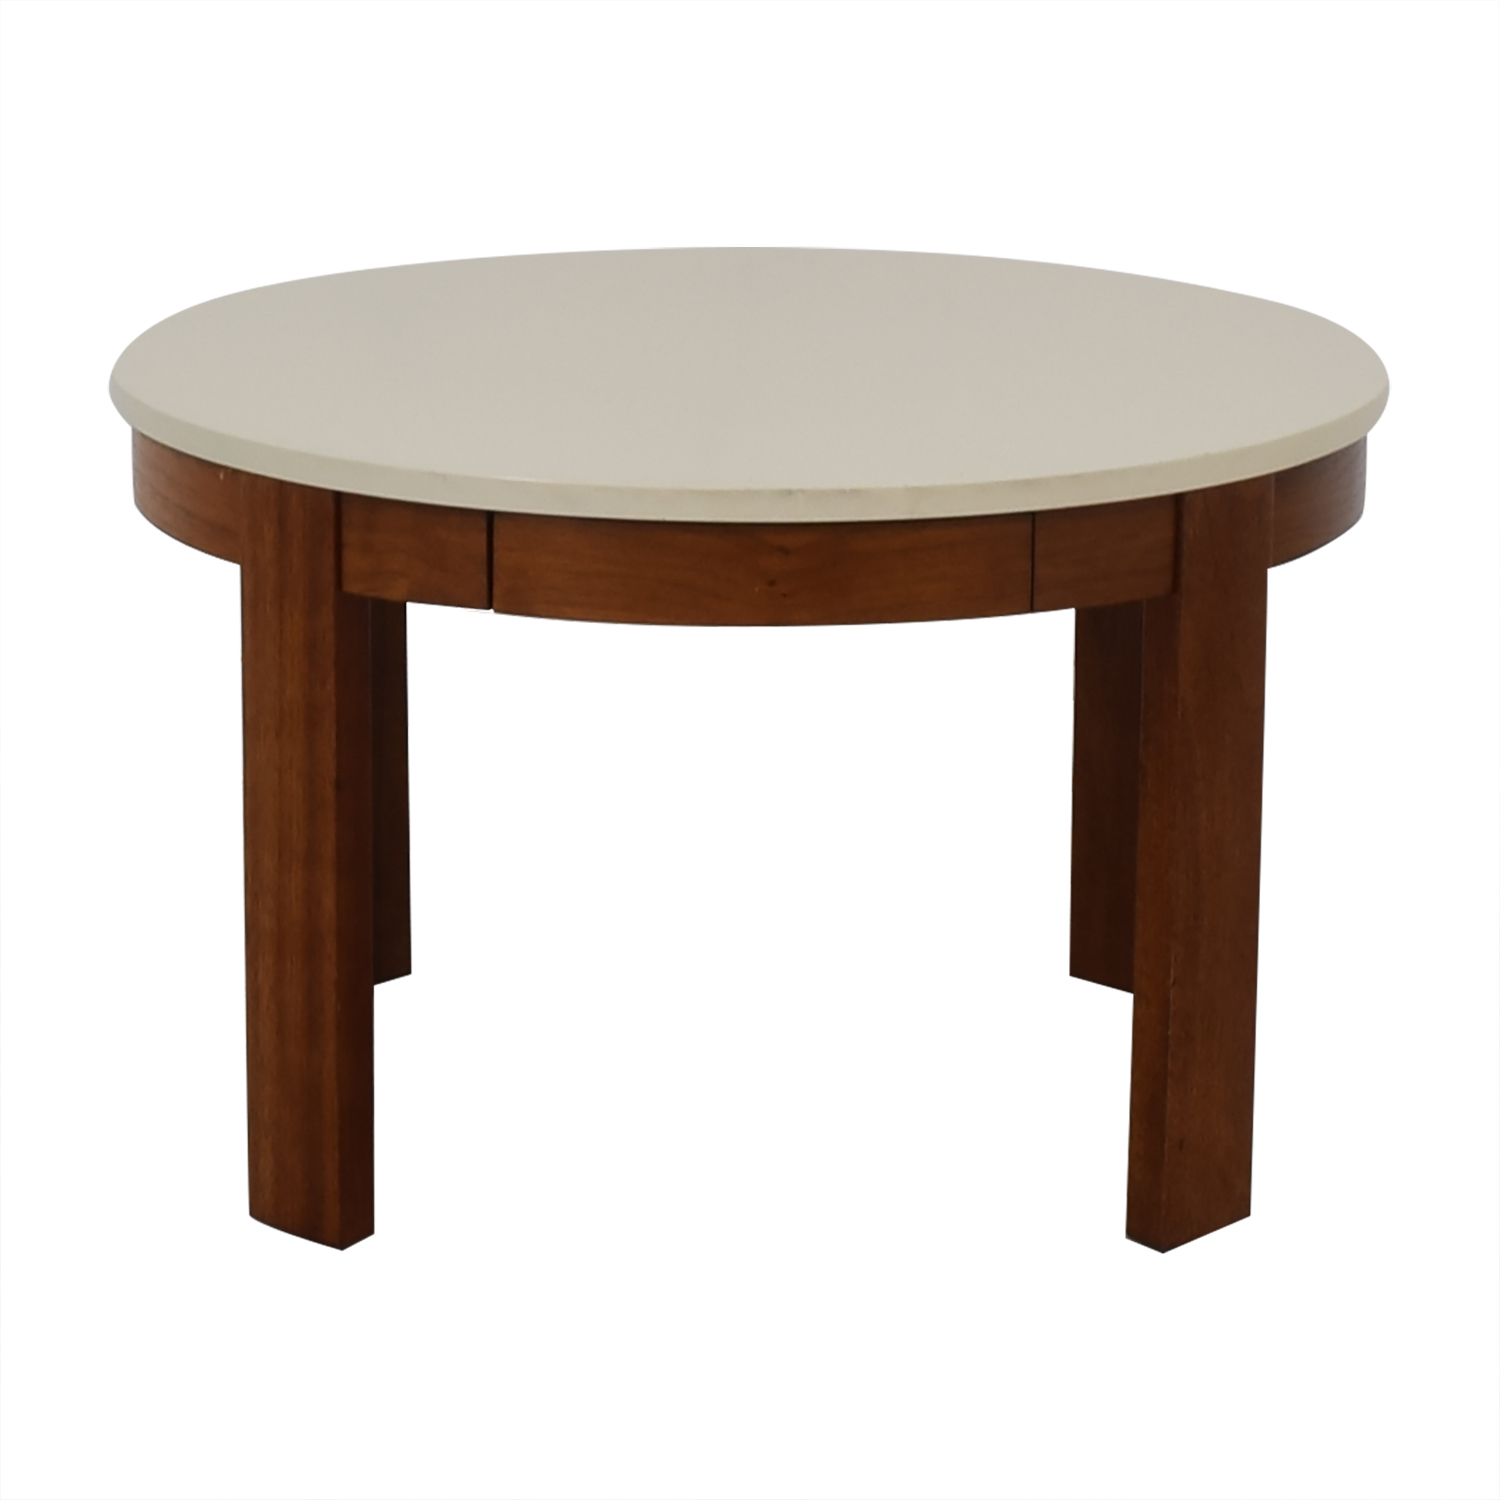 Crate & Barrel Small Coffee Table sale